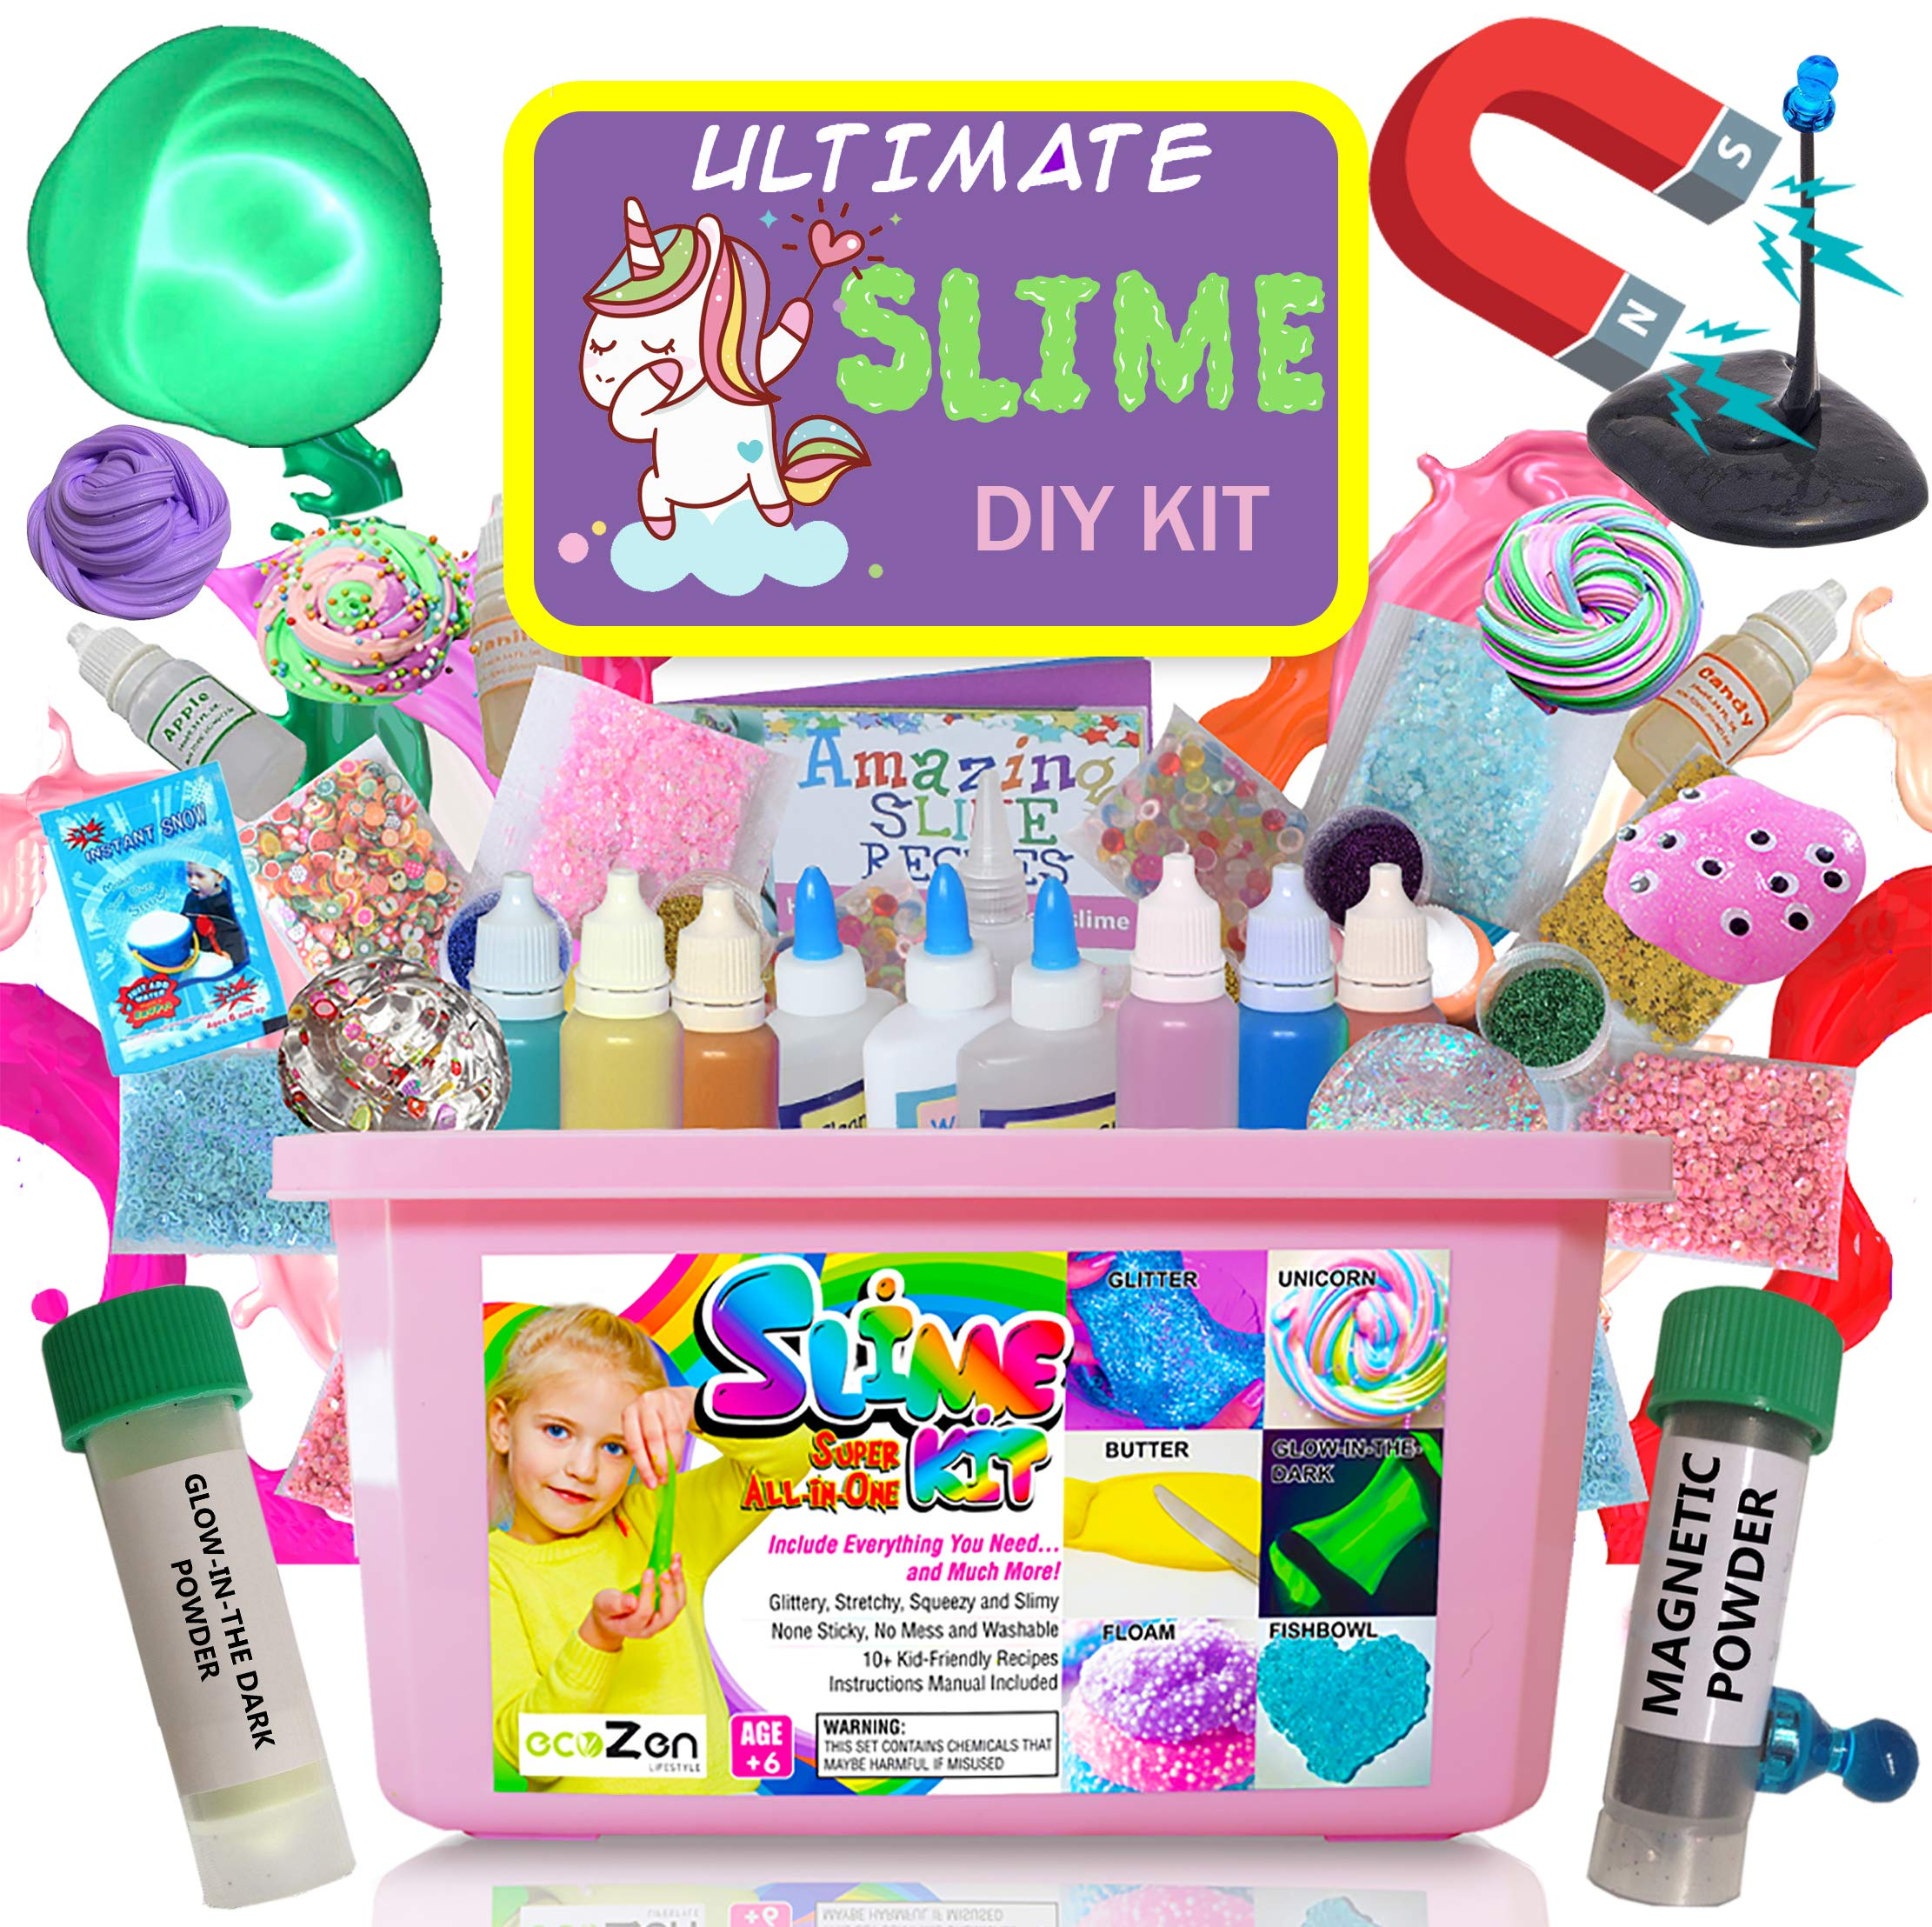 Ultimate Unicorn Slime Kit for Girls - Best Value Unicorn DIY Slime Supplies Kits for Making Tons of Various Fail-Proof Slimes - Perfect Birthday Toys Gifts for 7 8 9 10 11 12 Year Old Girls by ecoZen Lifestyle